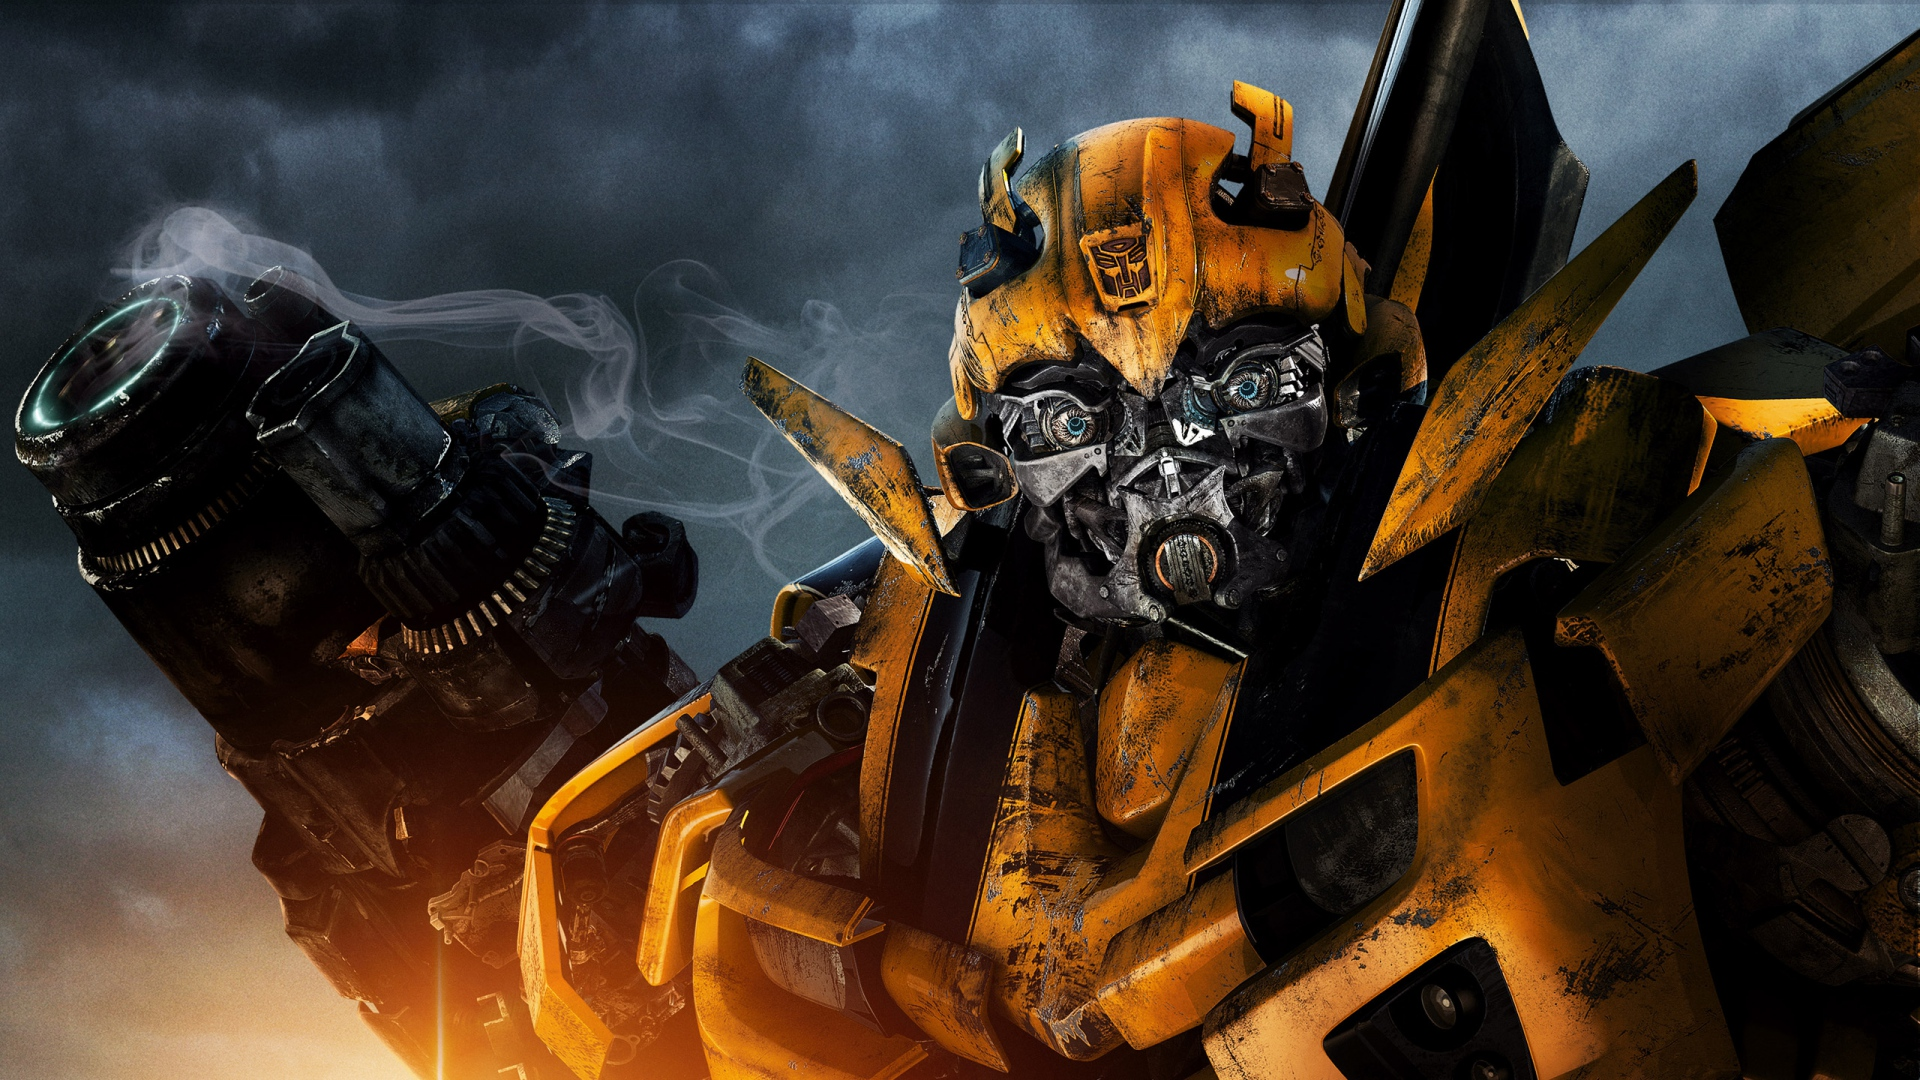 Wallpapers technocrazed - Transformers desktop backgrounds ...